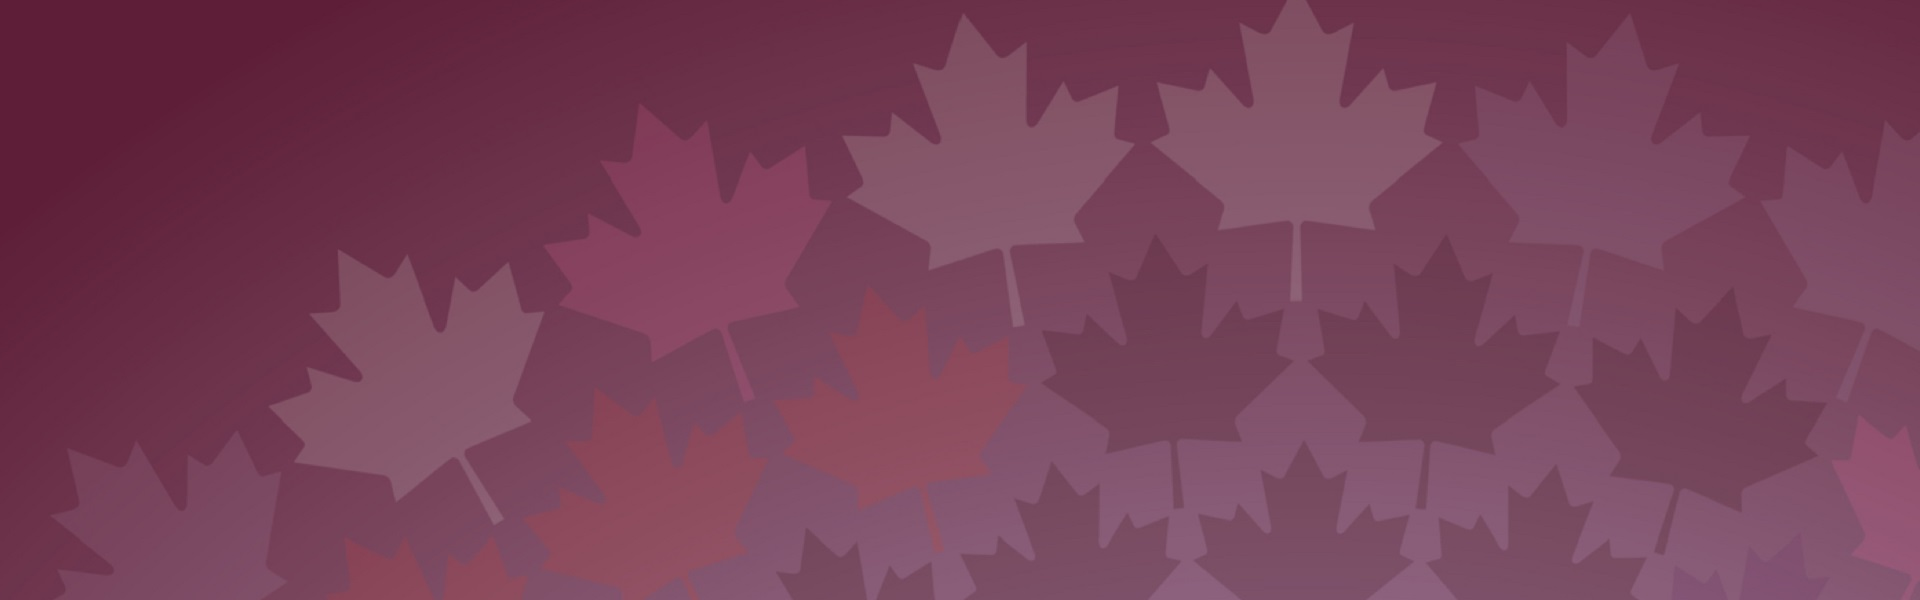 a drawing of maple leafs, taken from the Official Language's Act 50th anniversary banner